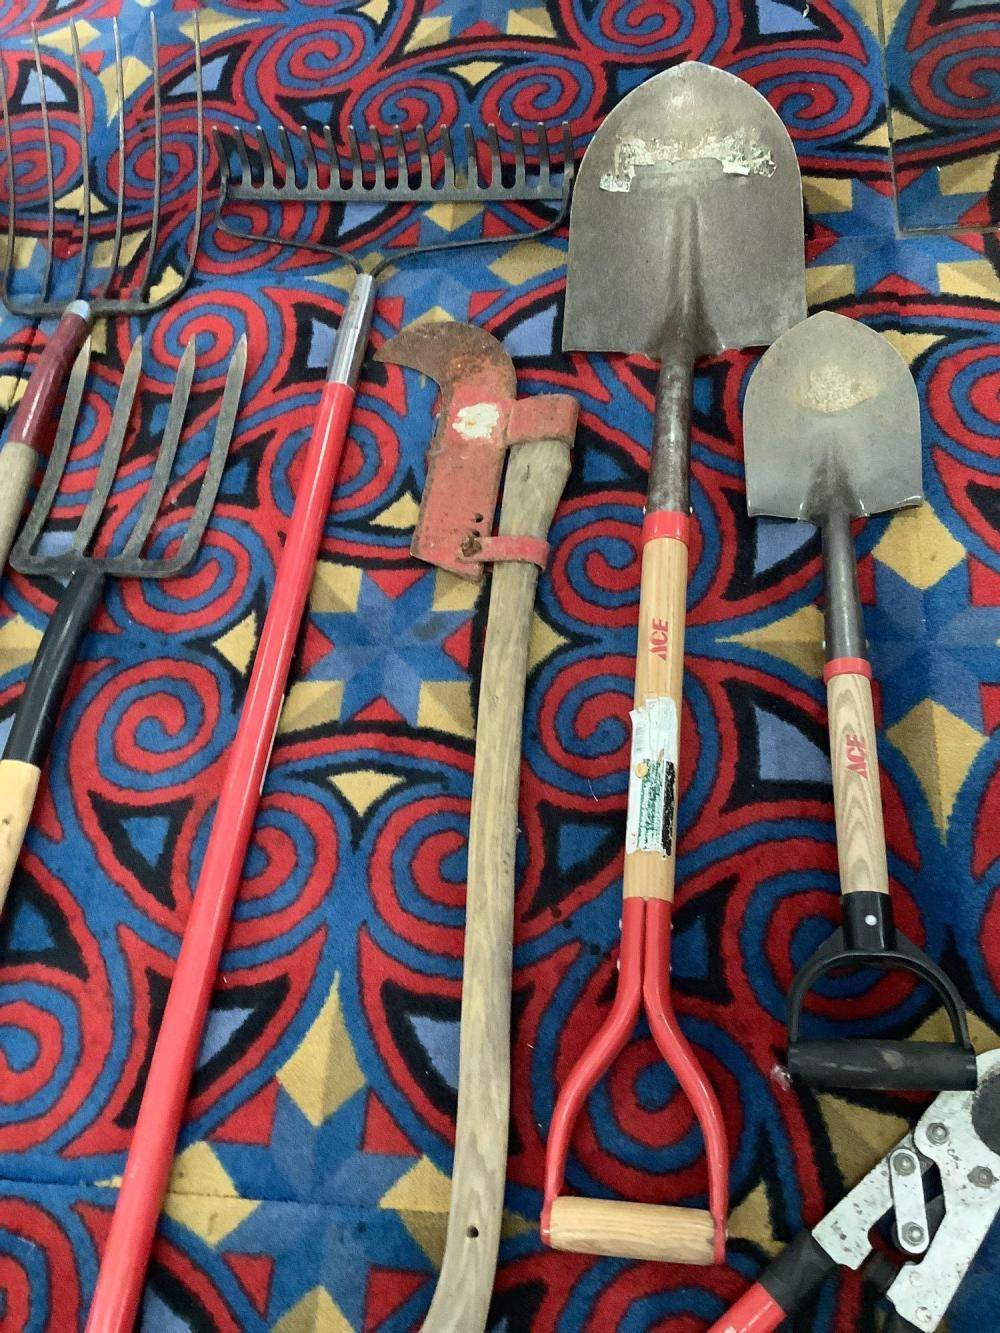 Lot 6: 9 yard tools; Structron shovel, Ames spading fork, rake, Ace shovels, and more see pics